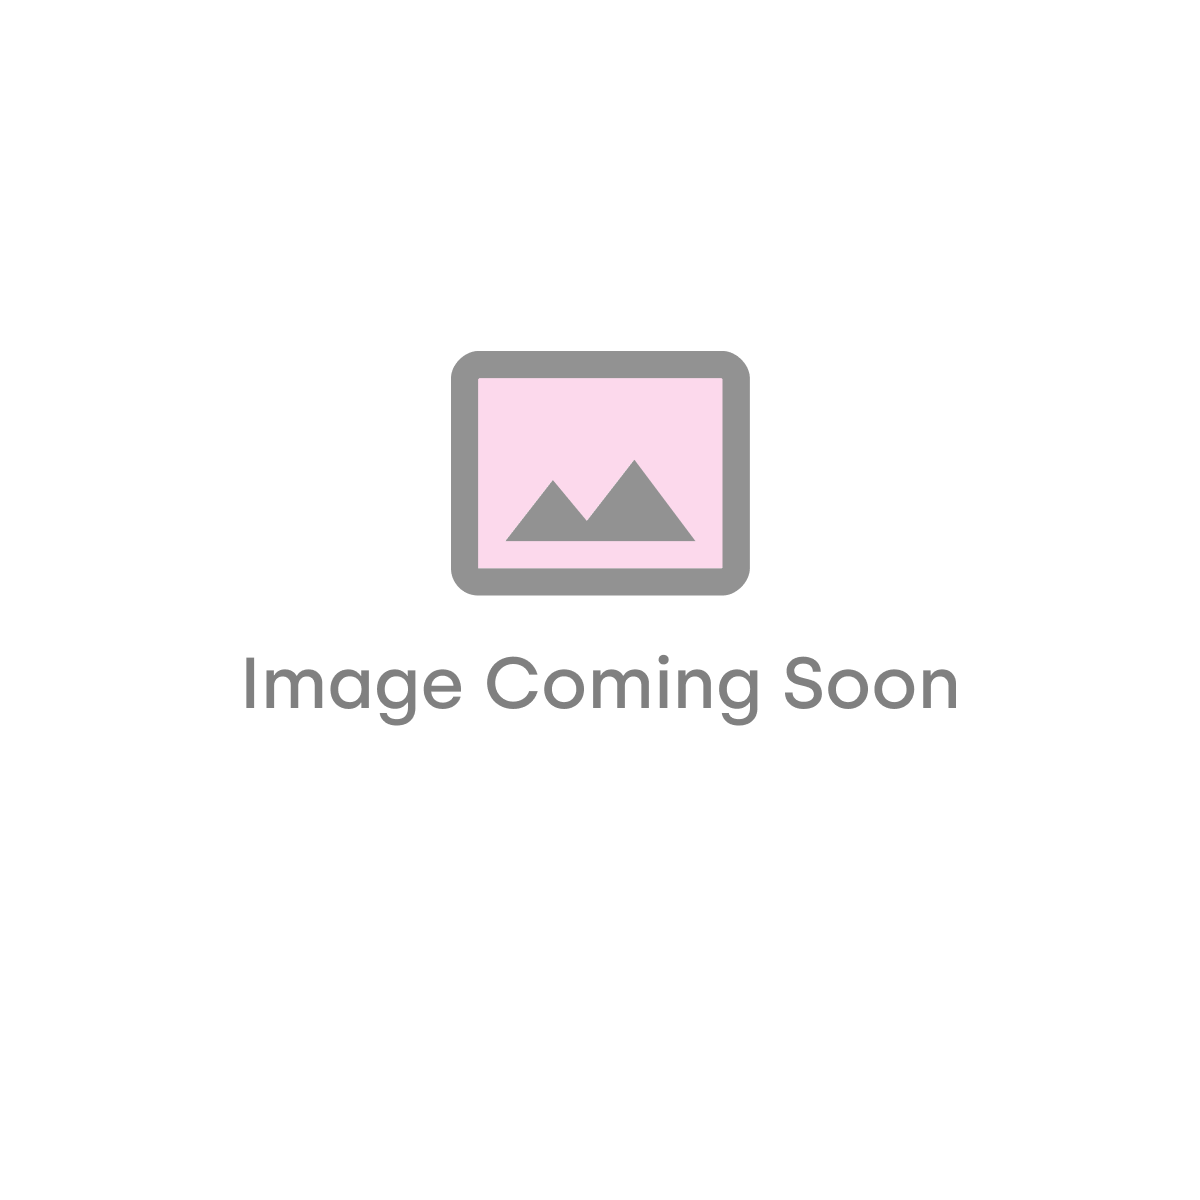 Aquadart Venturi 6 Chrome Hinged Bath Screen - Right Hand (19181)